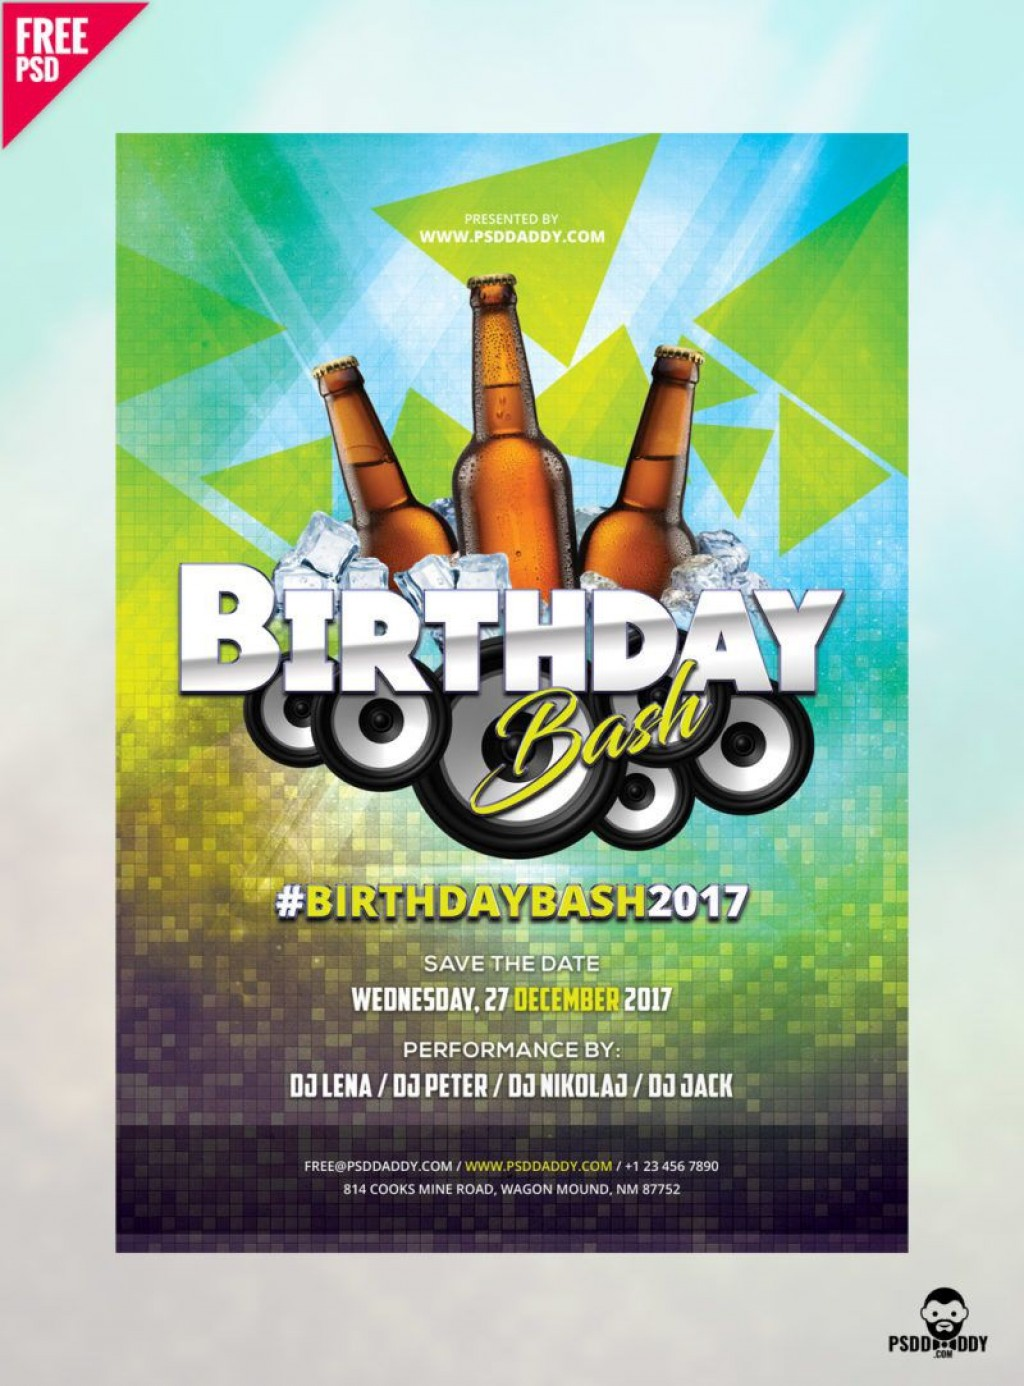 005 Sensational Free Birthday Flyer Template Psd Image  Foam Party - Neon Glow Download PoolLarge